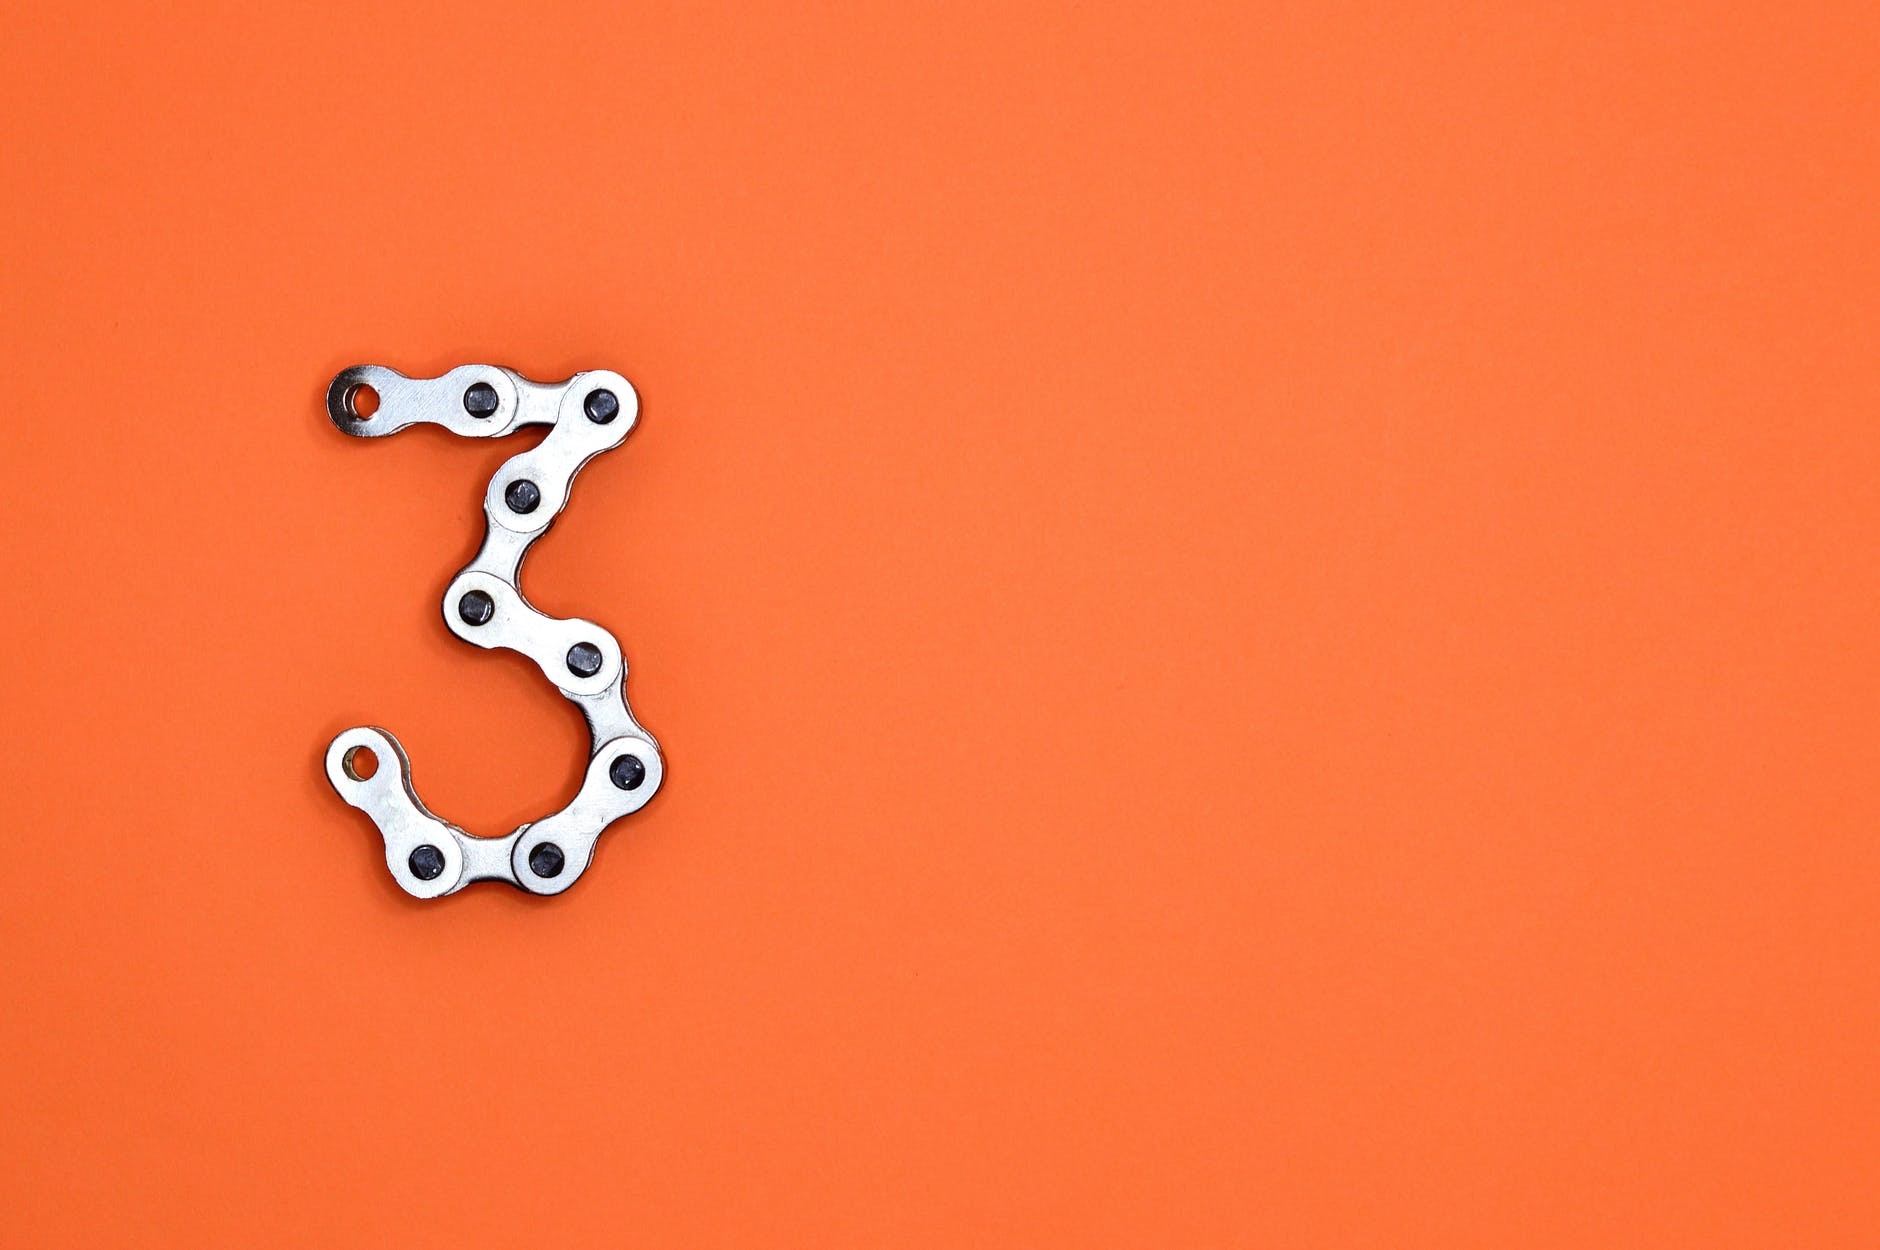 Orange background with the number three made out of hardware